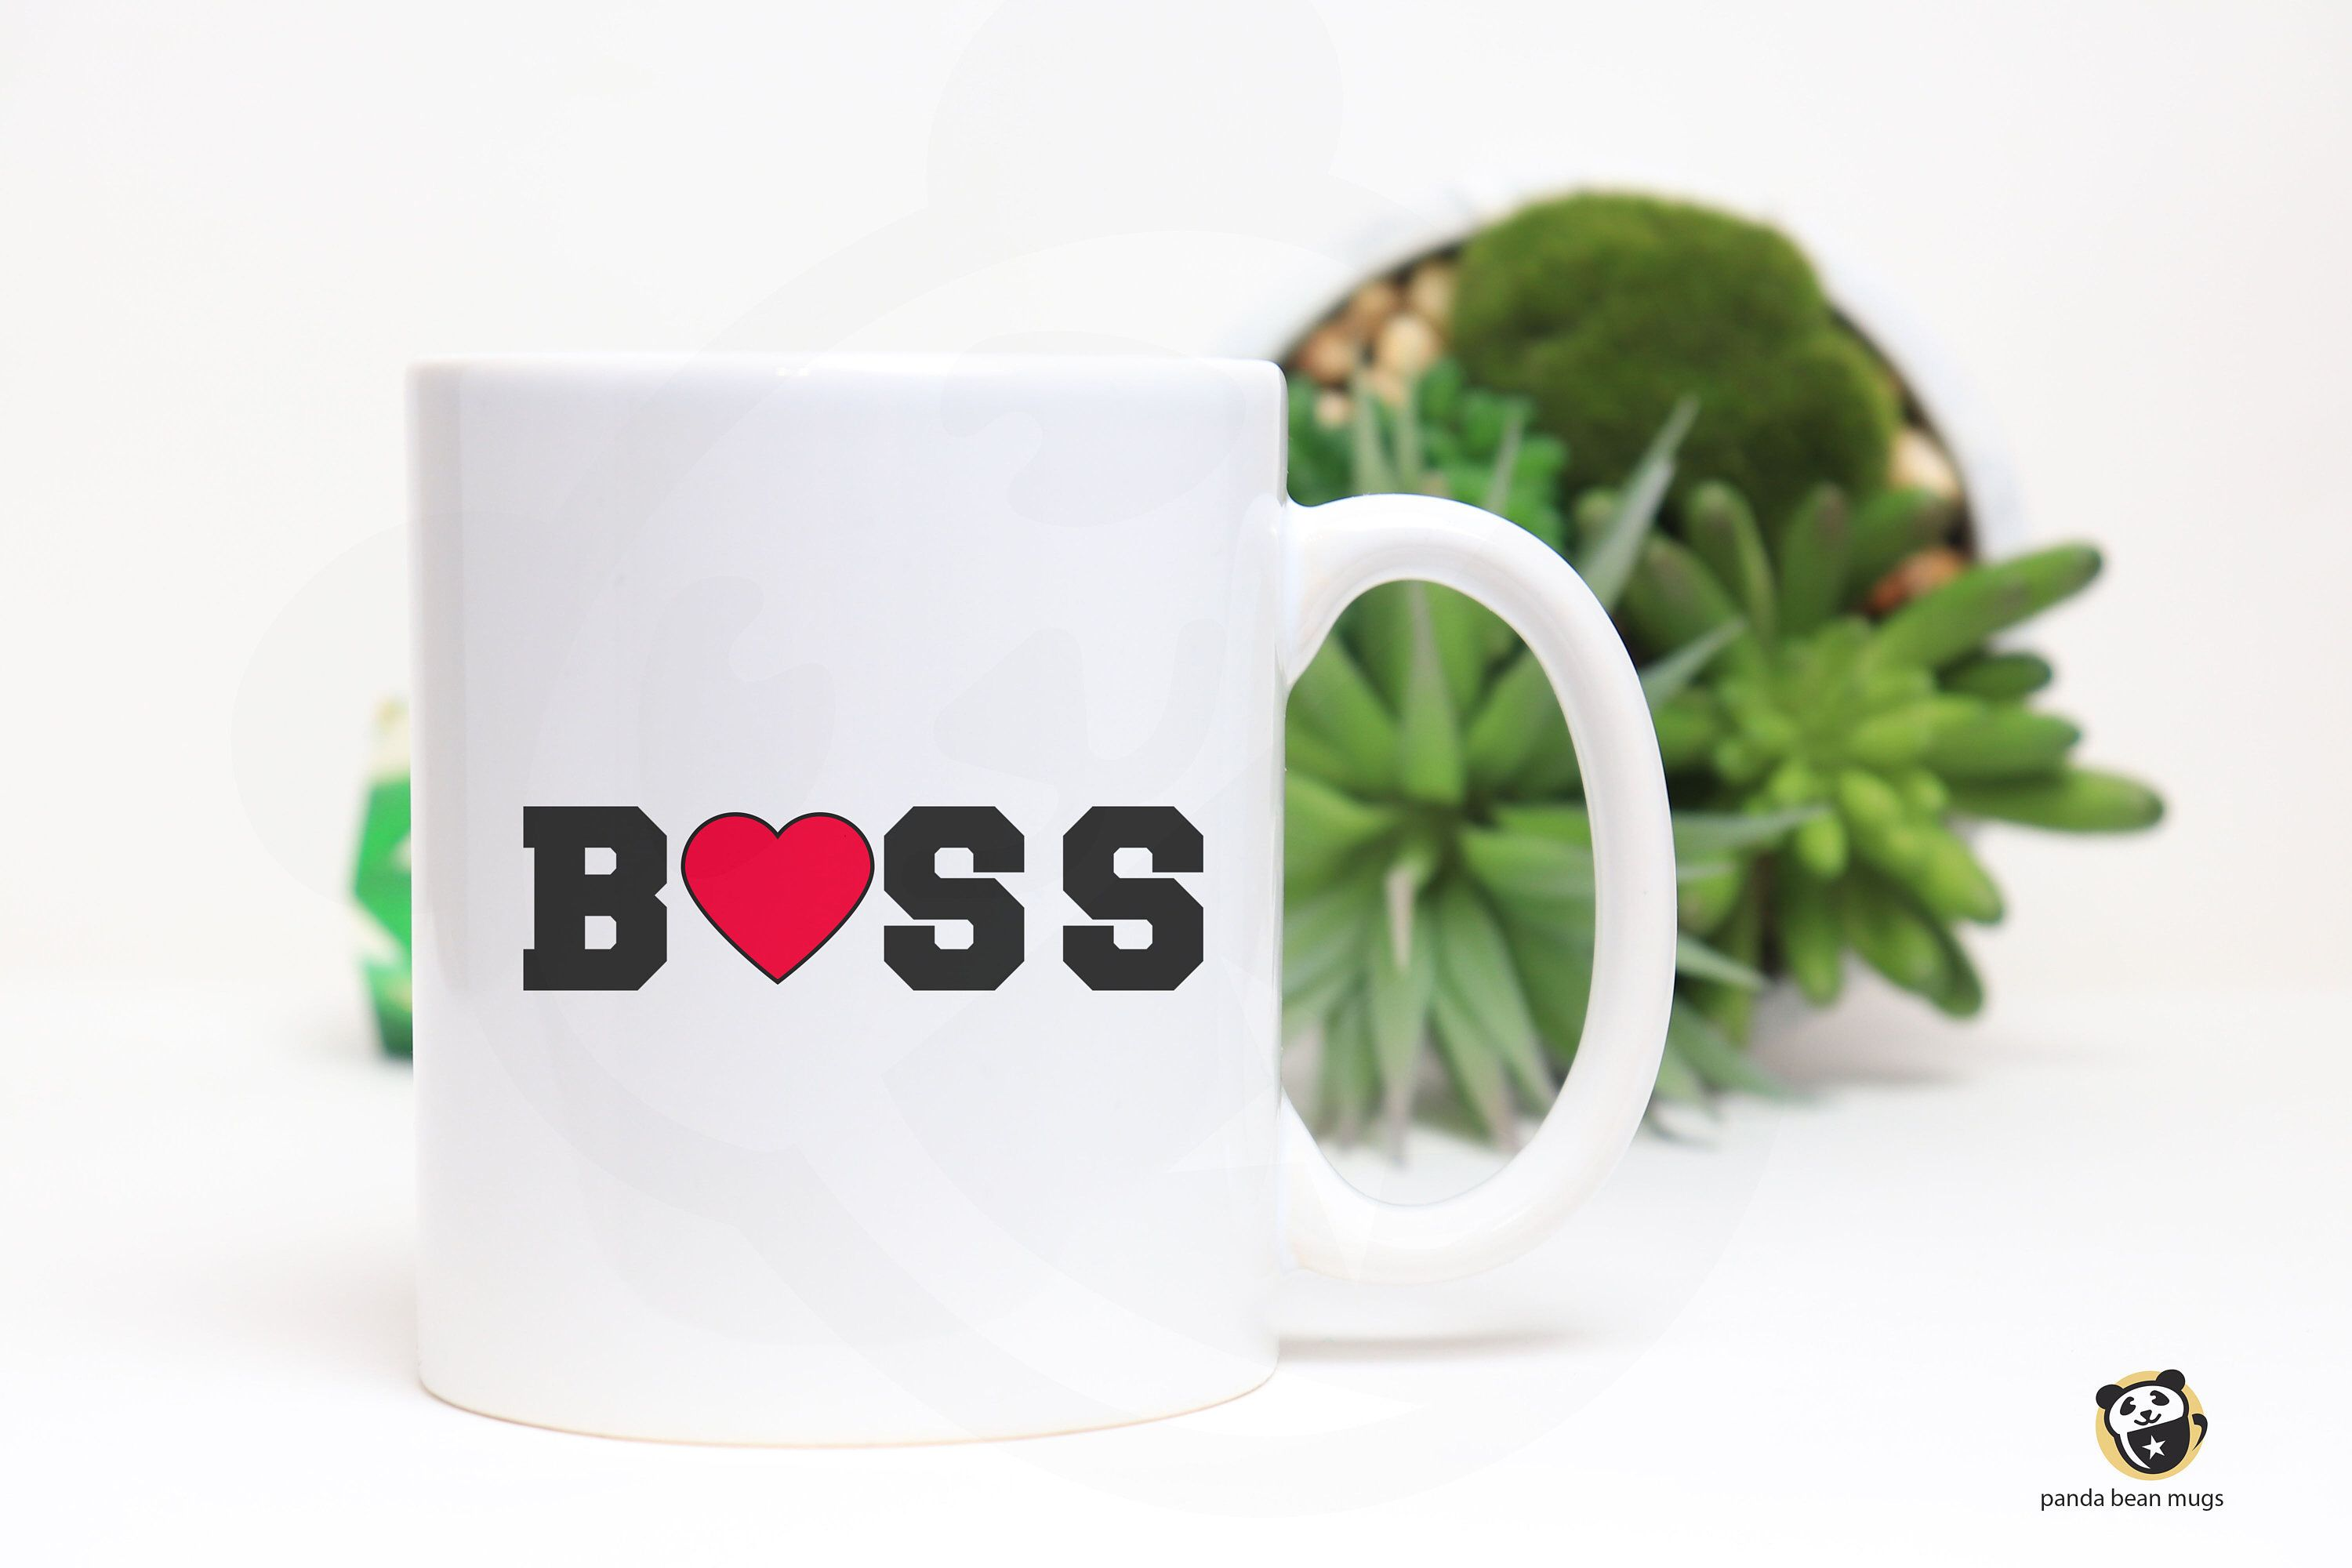 Boss Coffee Mug, I am the Boss Coffee Mug, First day on the job, Quotes on a Mug, Work Quotes, Workplace Funny coffee Cups #bosscoffee